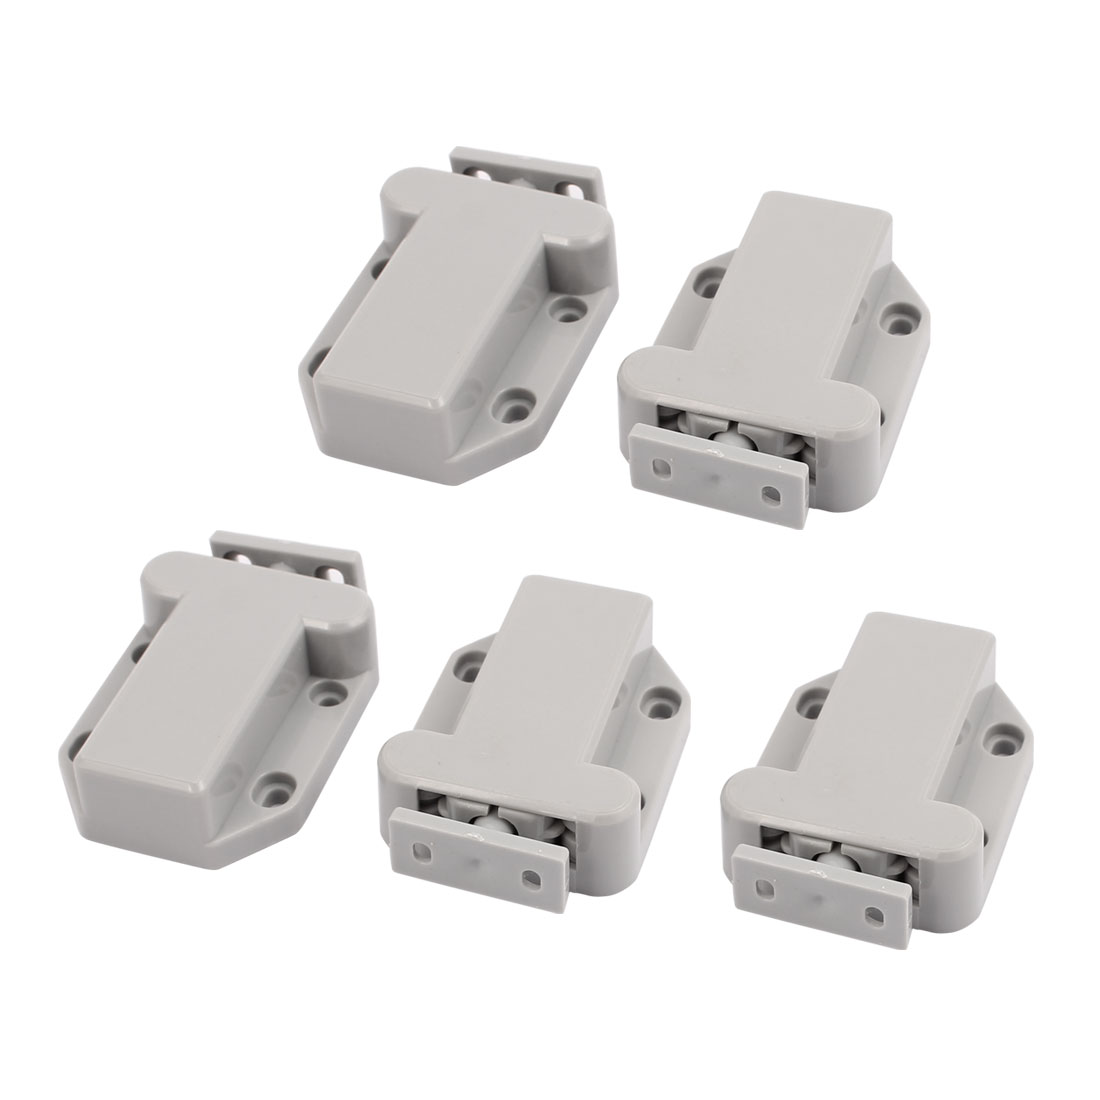 Door Cupboard Cabinet Beetle Shape Magnetic Catch Push Gray 5pcs